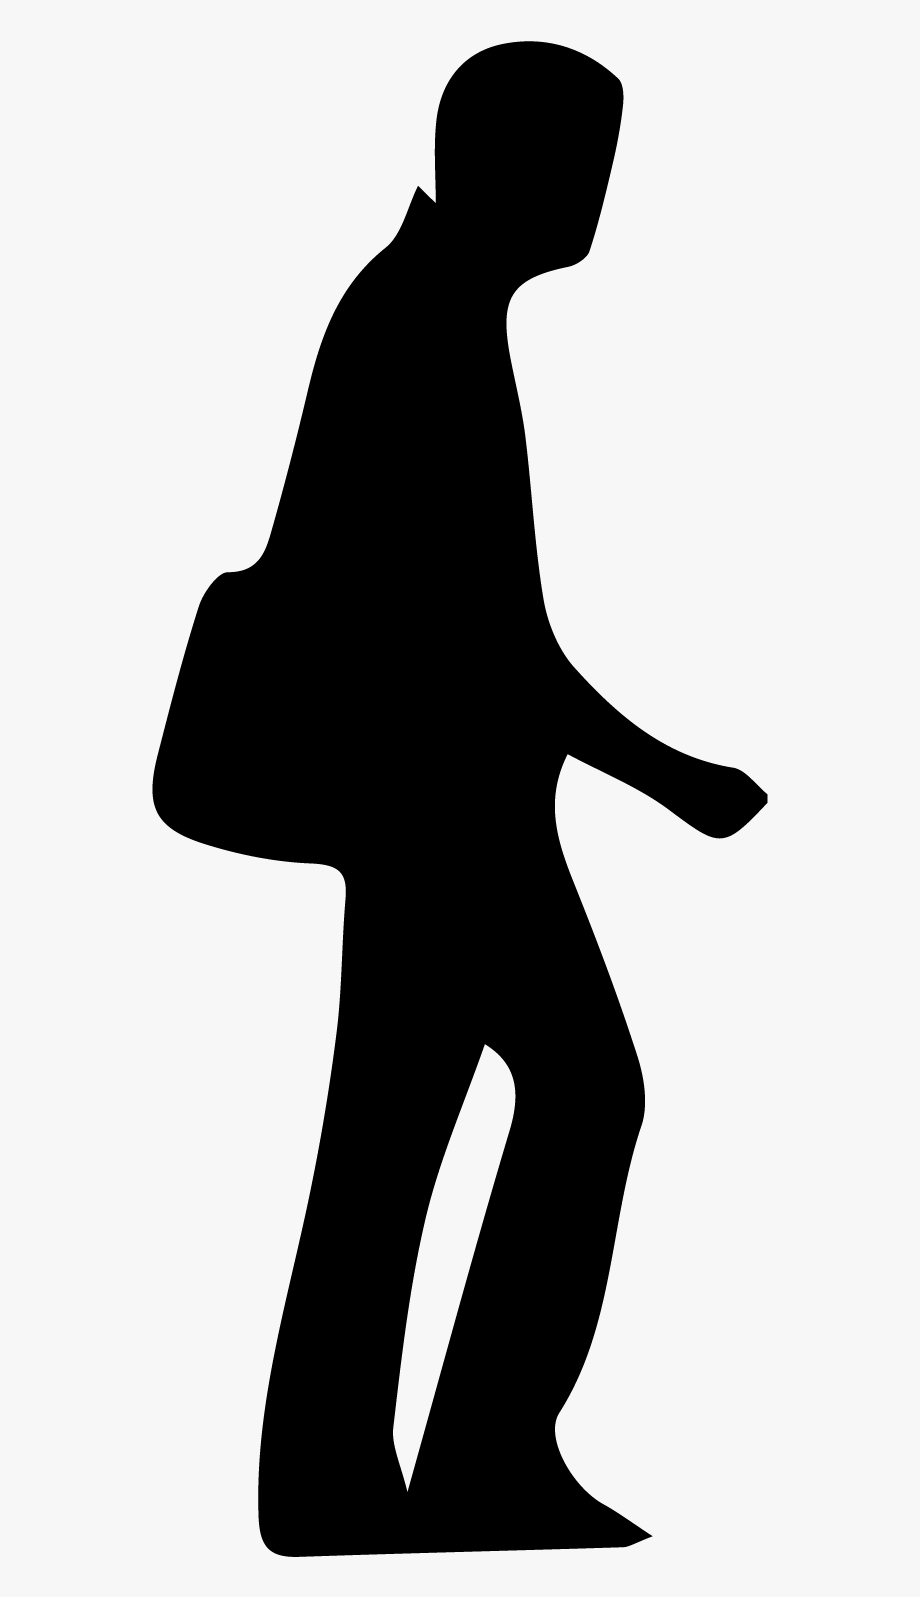 Clipart Walking Man Walking.